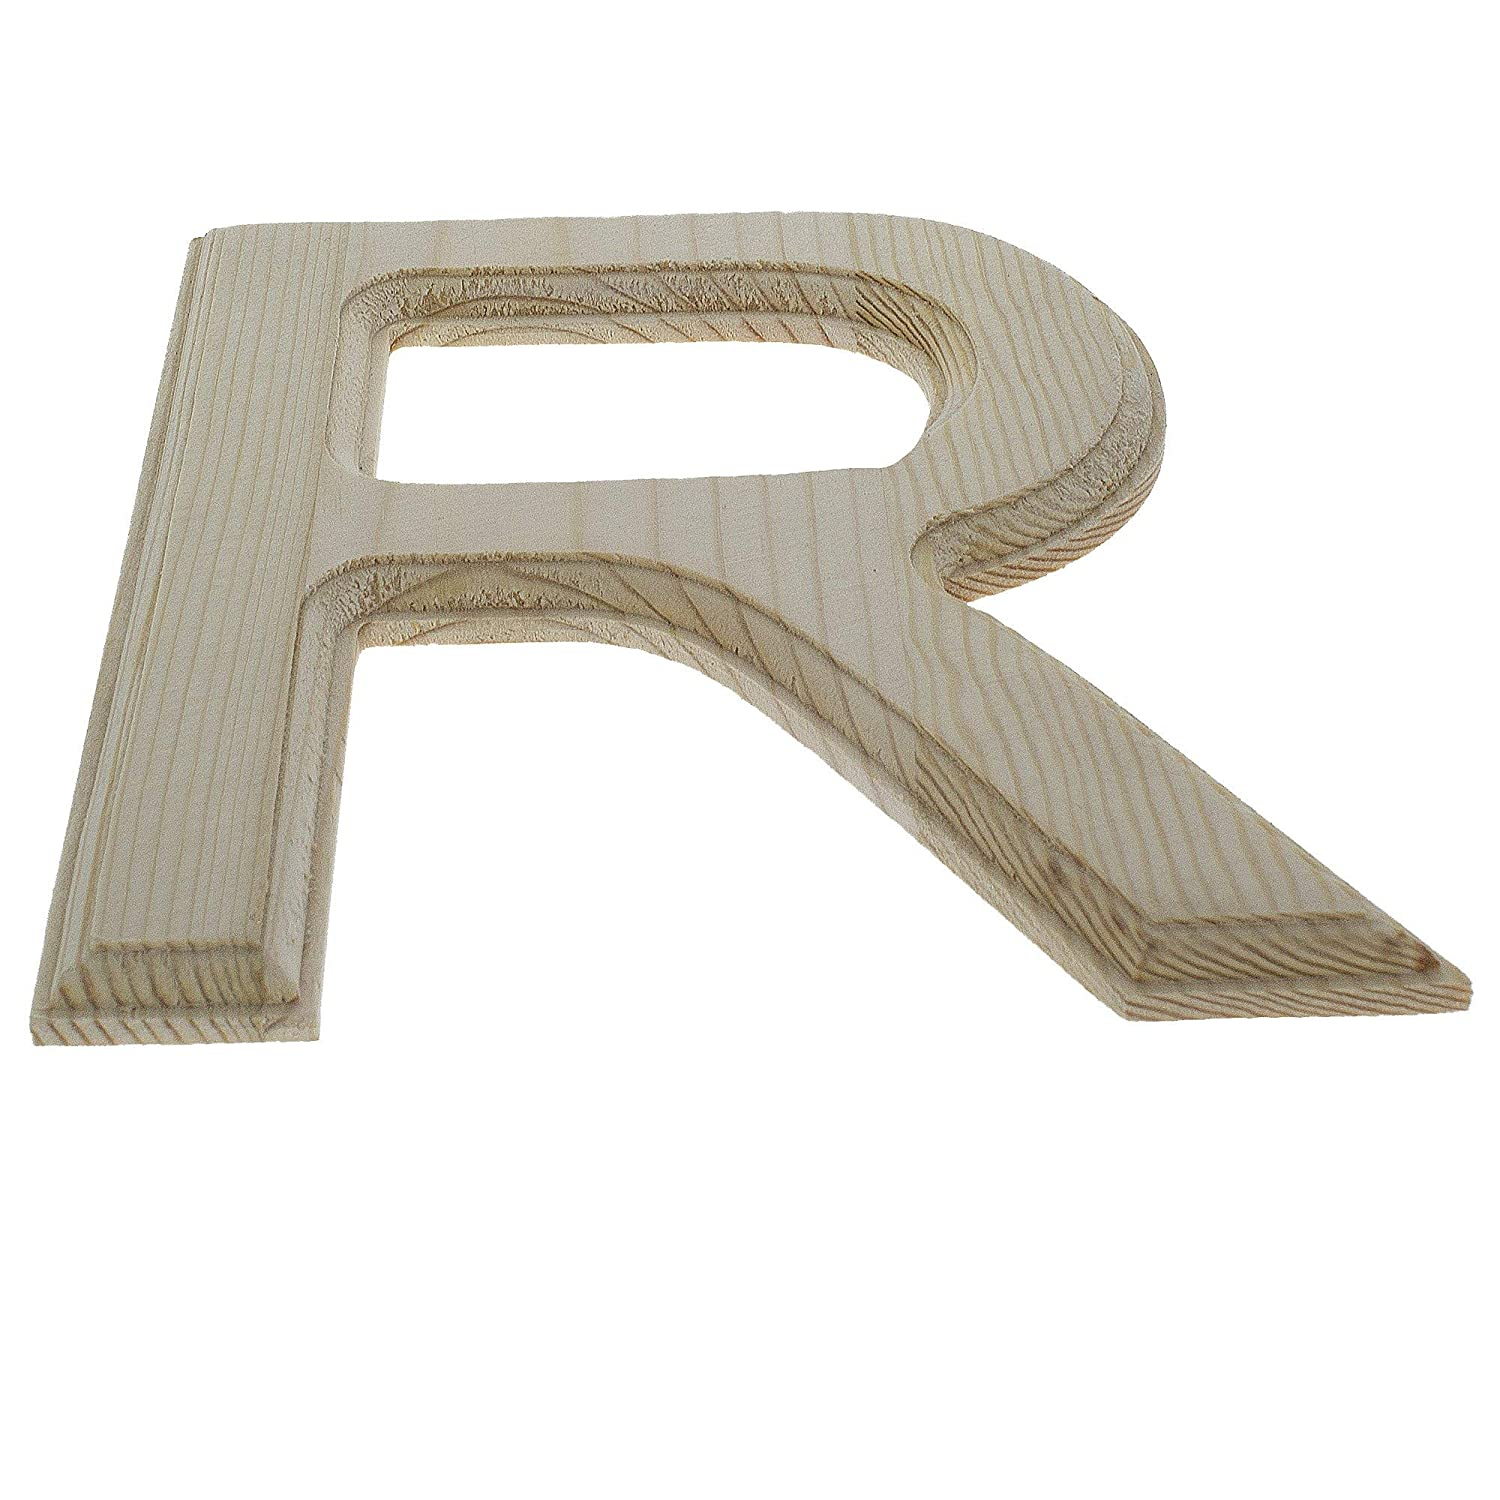 BestPysanky Unfinished Wooden Letter R 6.25 Inches